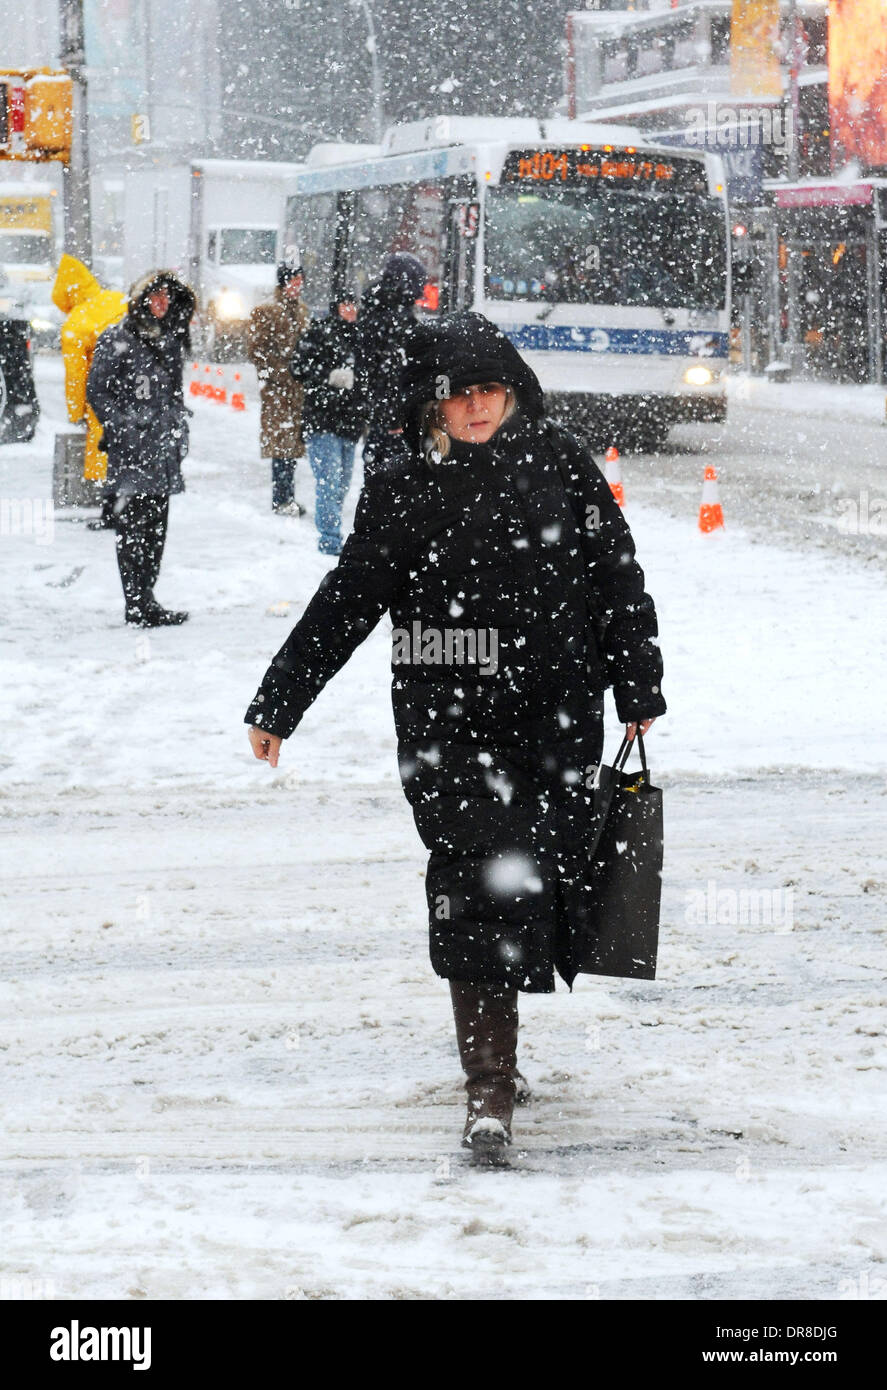 New York, NY, USA. 21st Jan, 2014. A woman walks in snowstorm across a street near the Times Square in New York Stock Photo